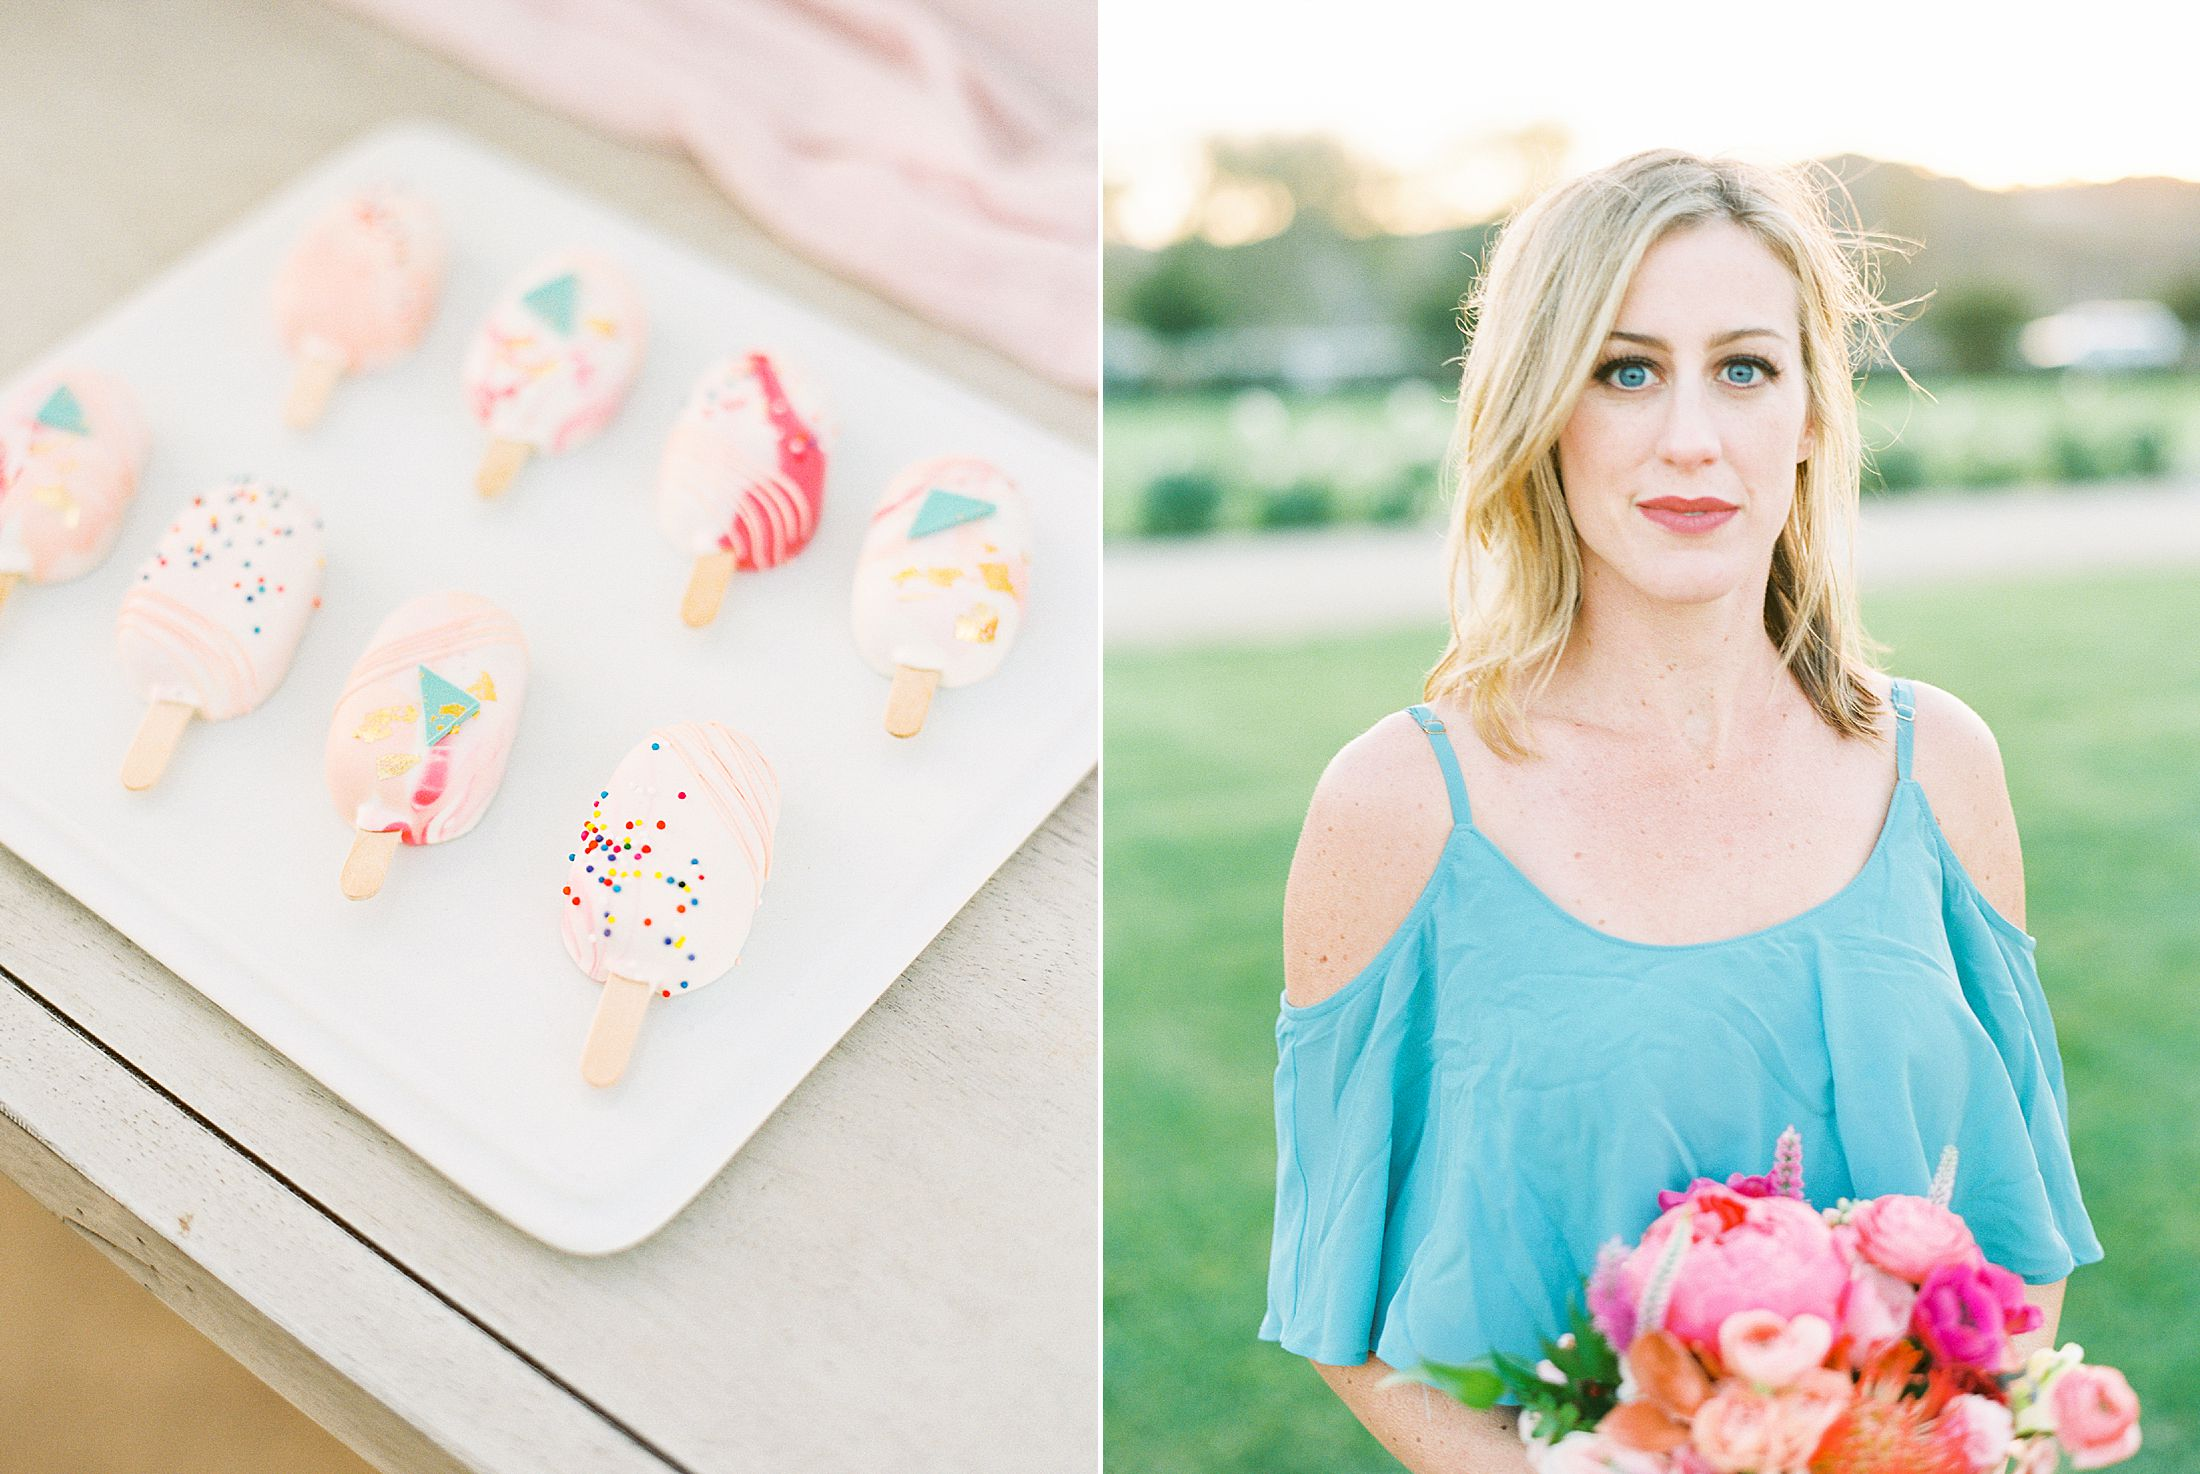 White Barn Edna Valley Wedding Inspiration - San Luis Obispo Wedding - Featured on Green Wedding Shoes - Ashley Baumgartner - FM Events SLO - SLO Wedding Photographer_0059.jpg